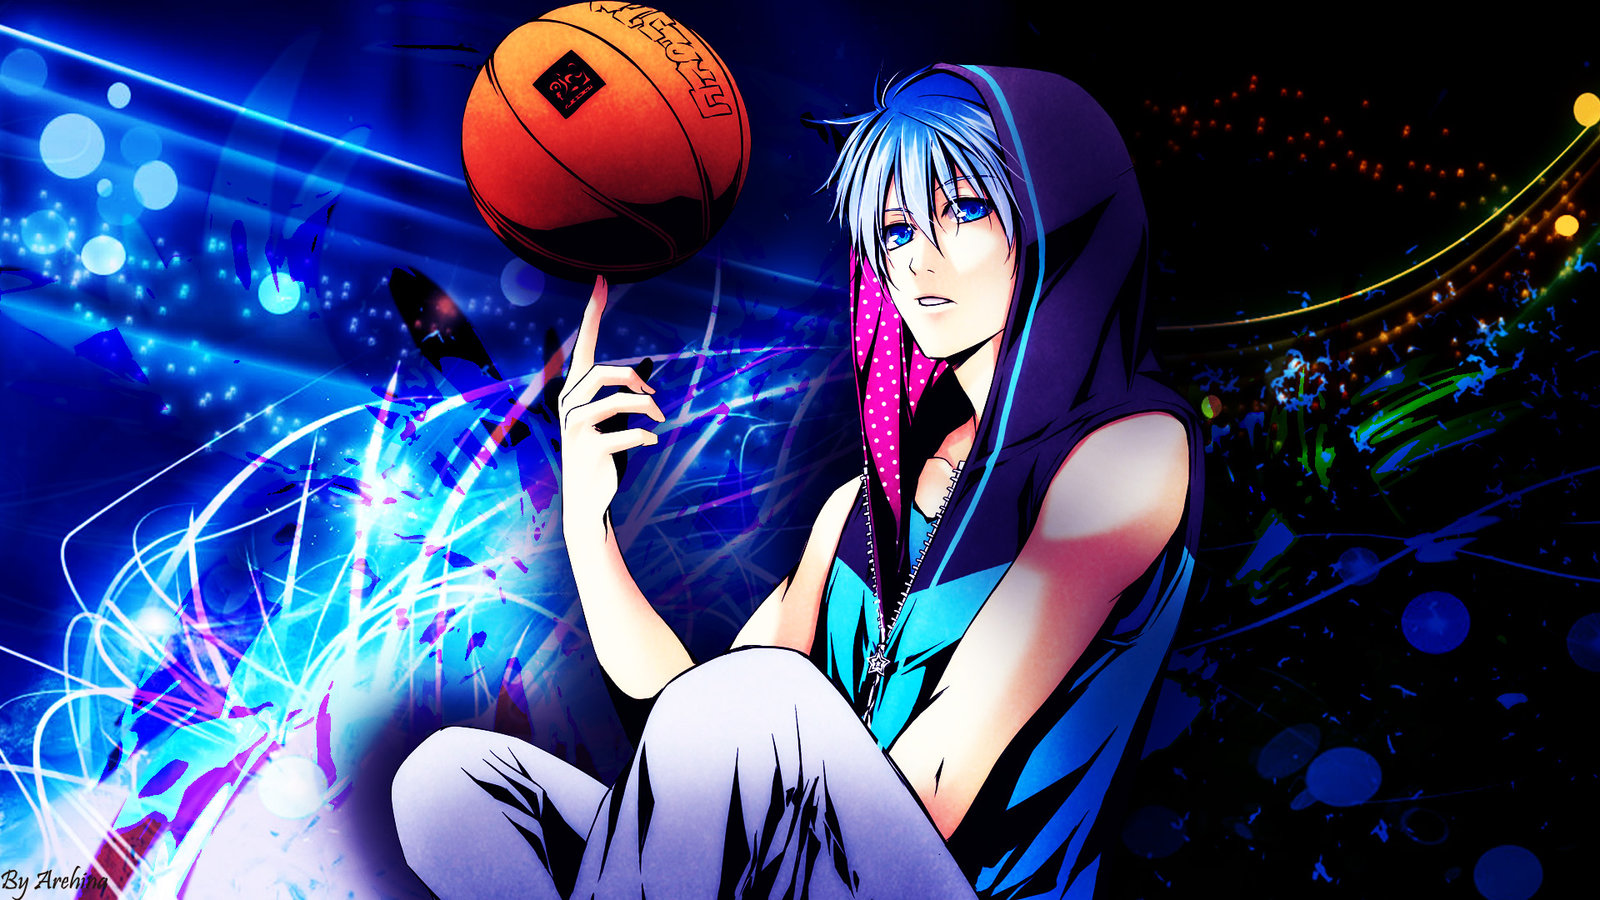 Kuroko Tetsuya Images HD Wallpaper And Background Photos